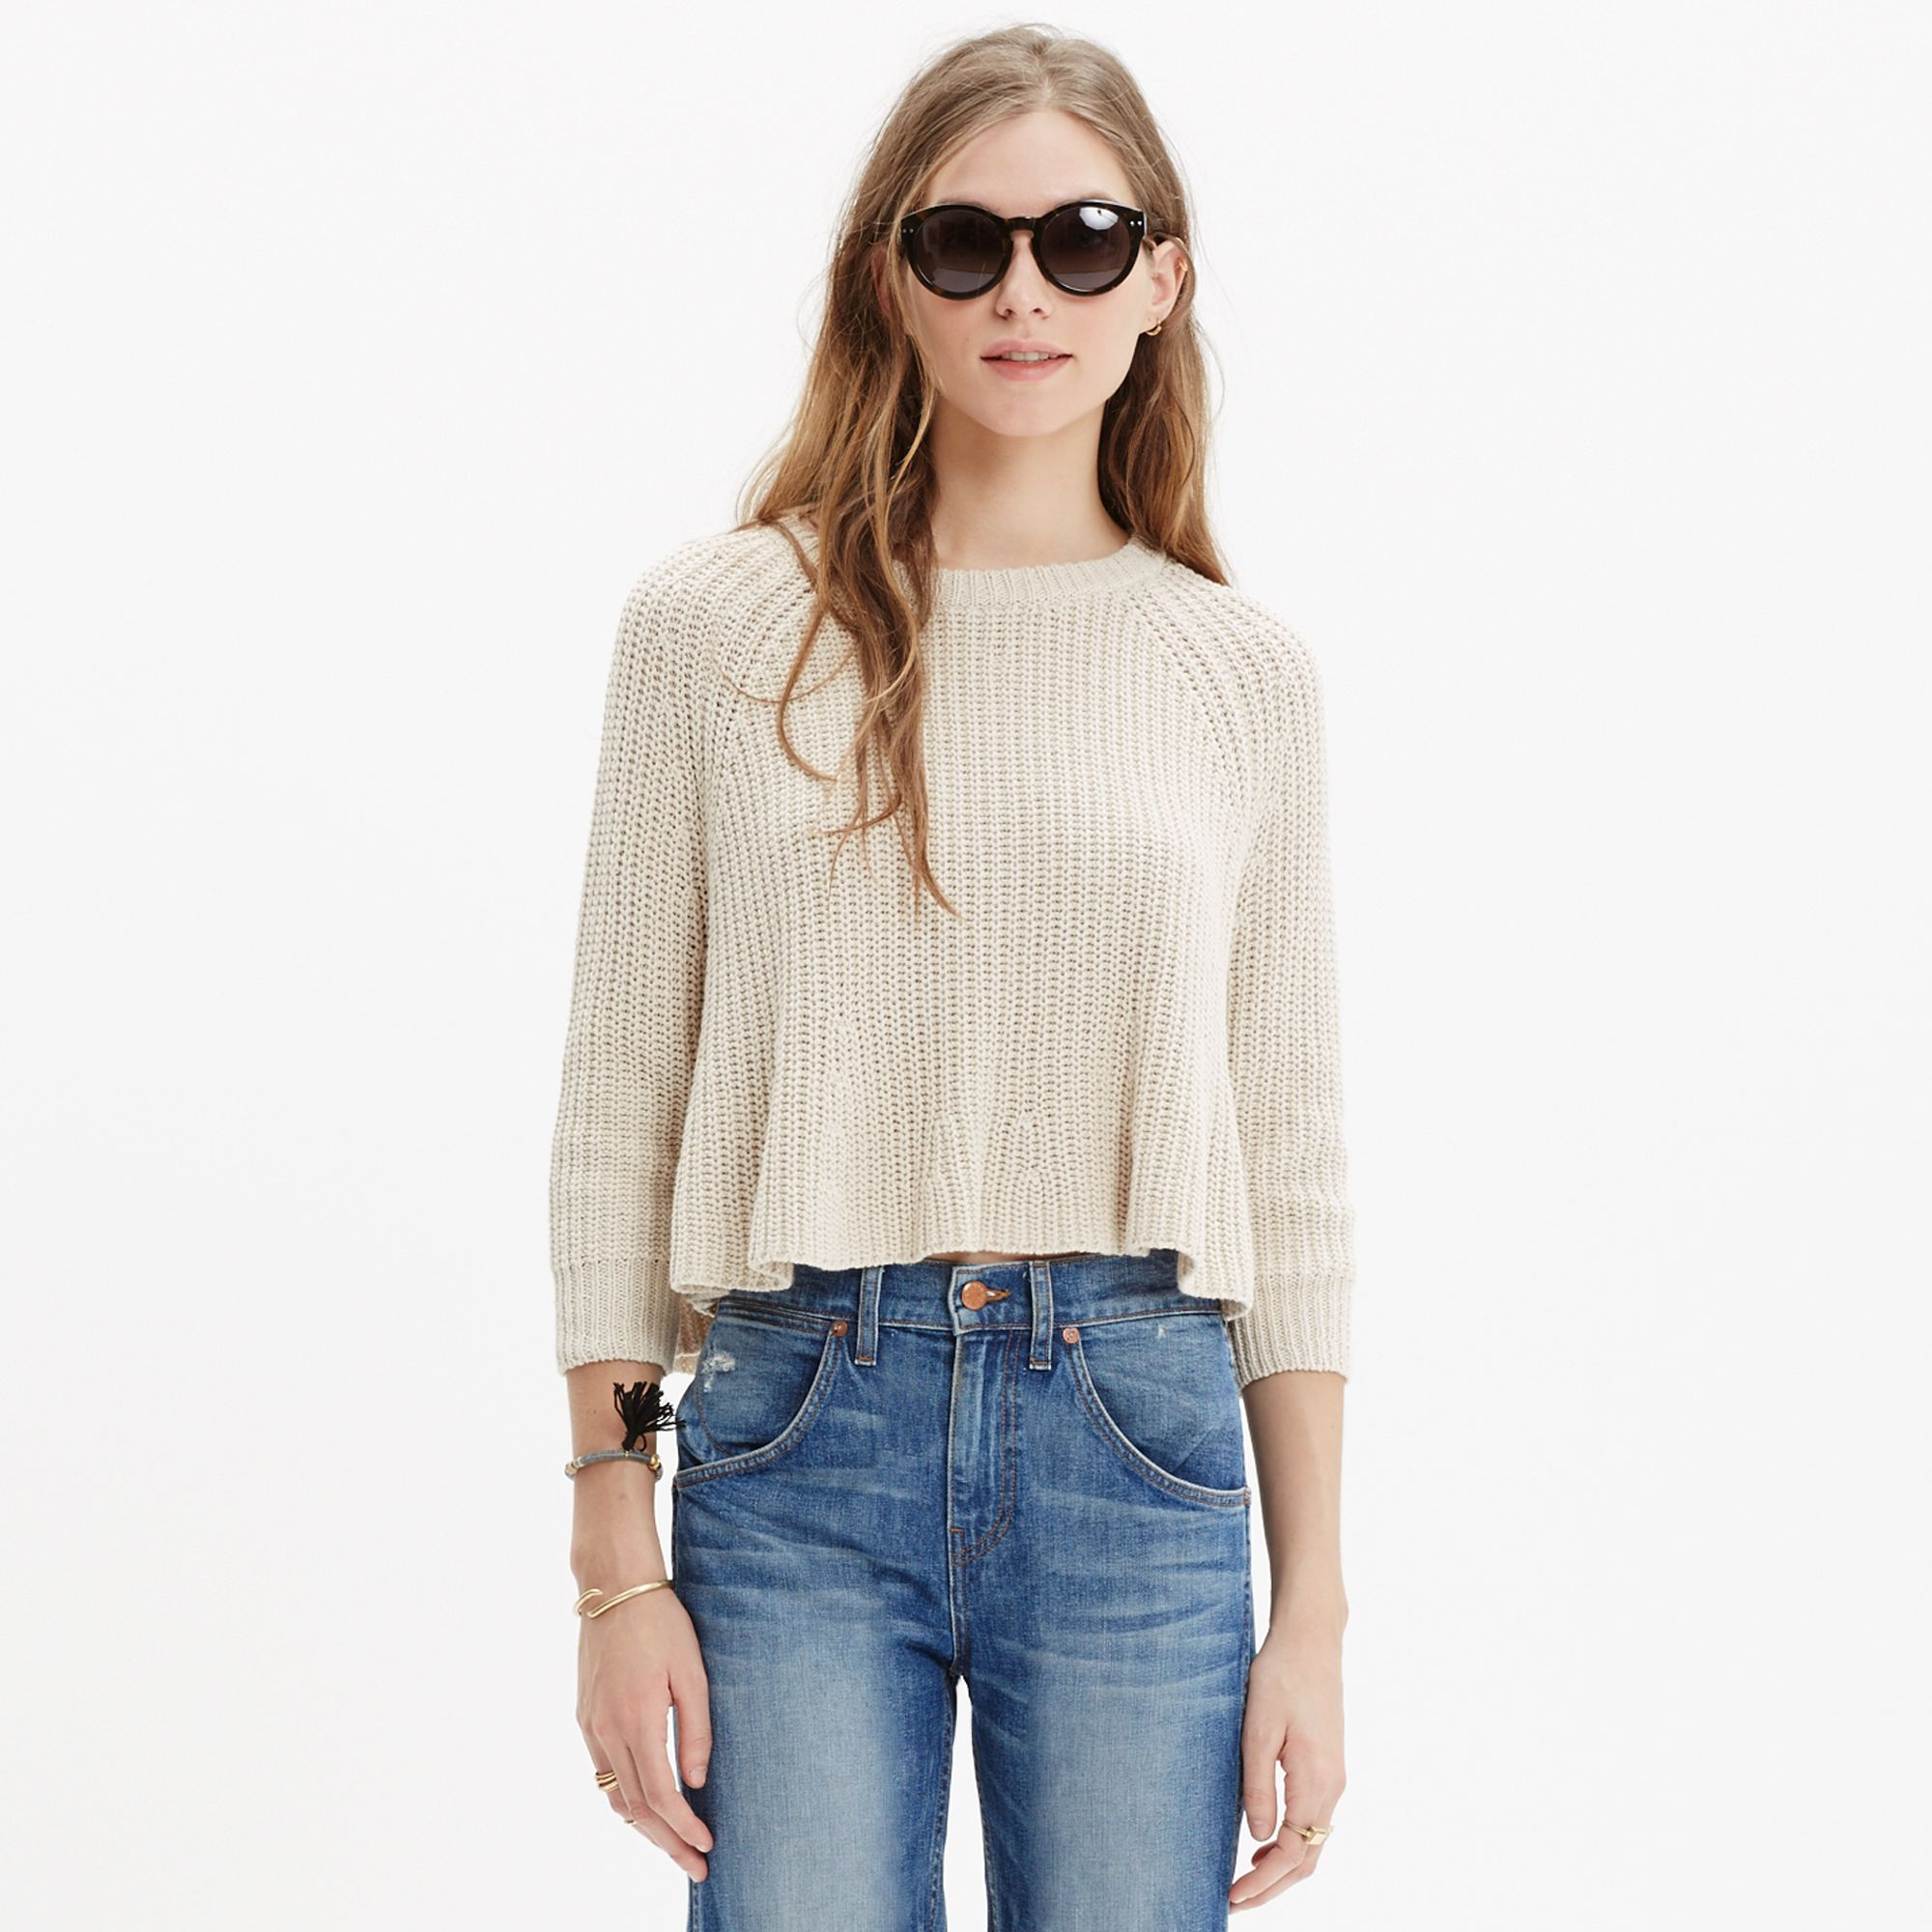 Madewell Swing Crop Sweater in Natural | Lyst